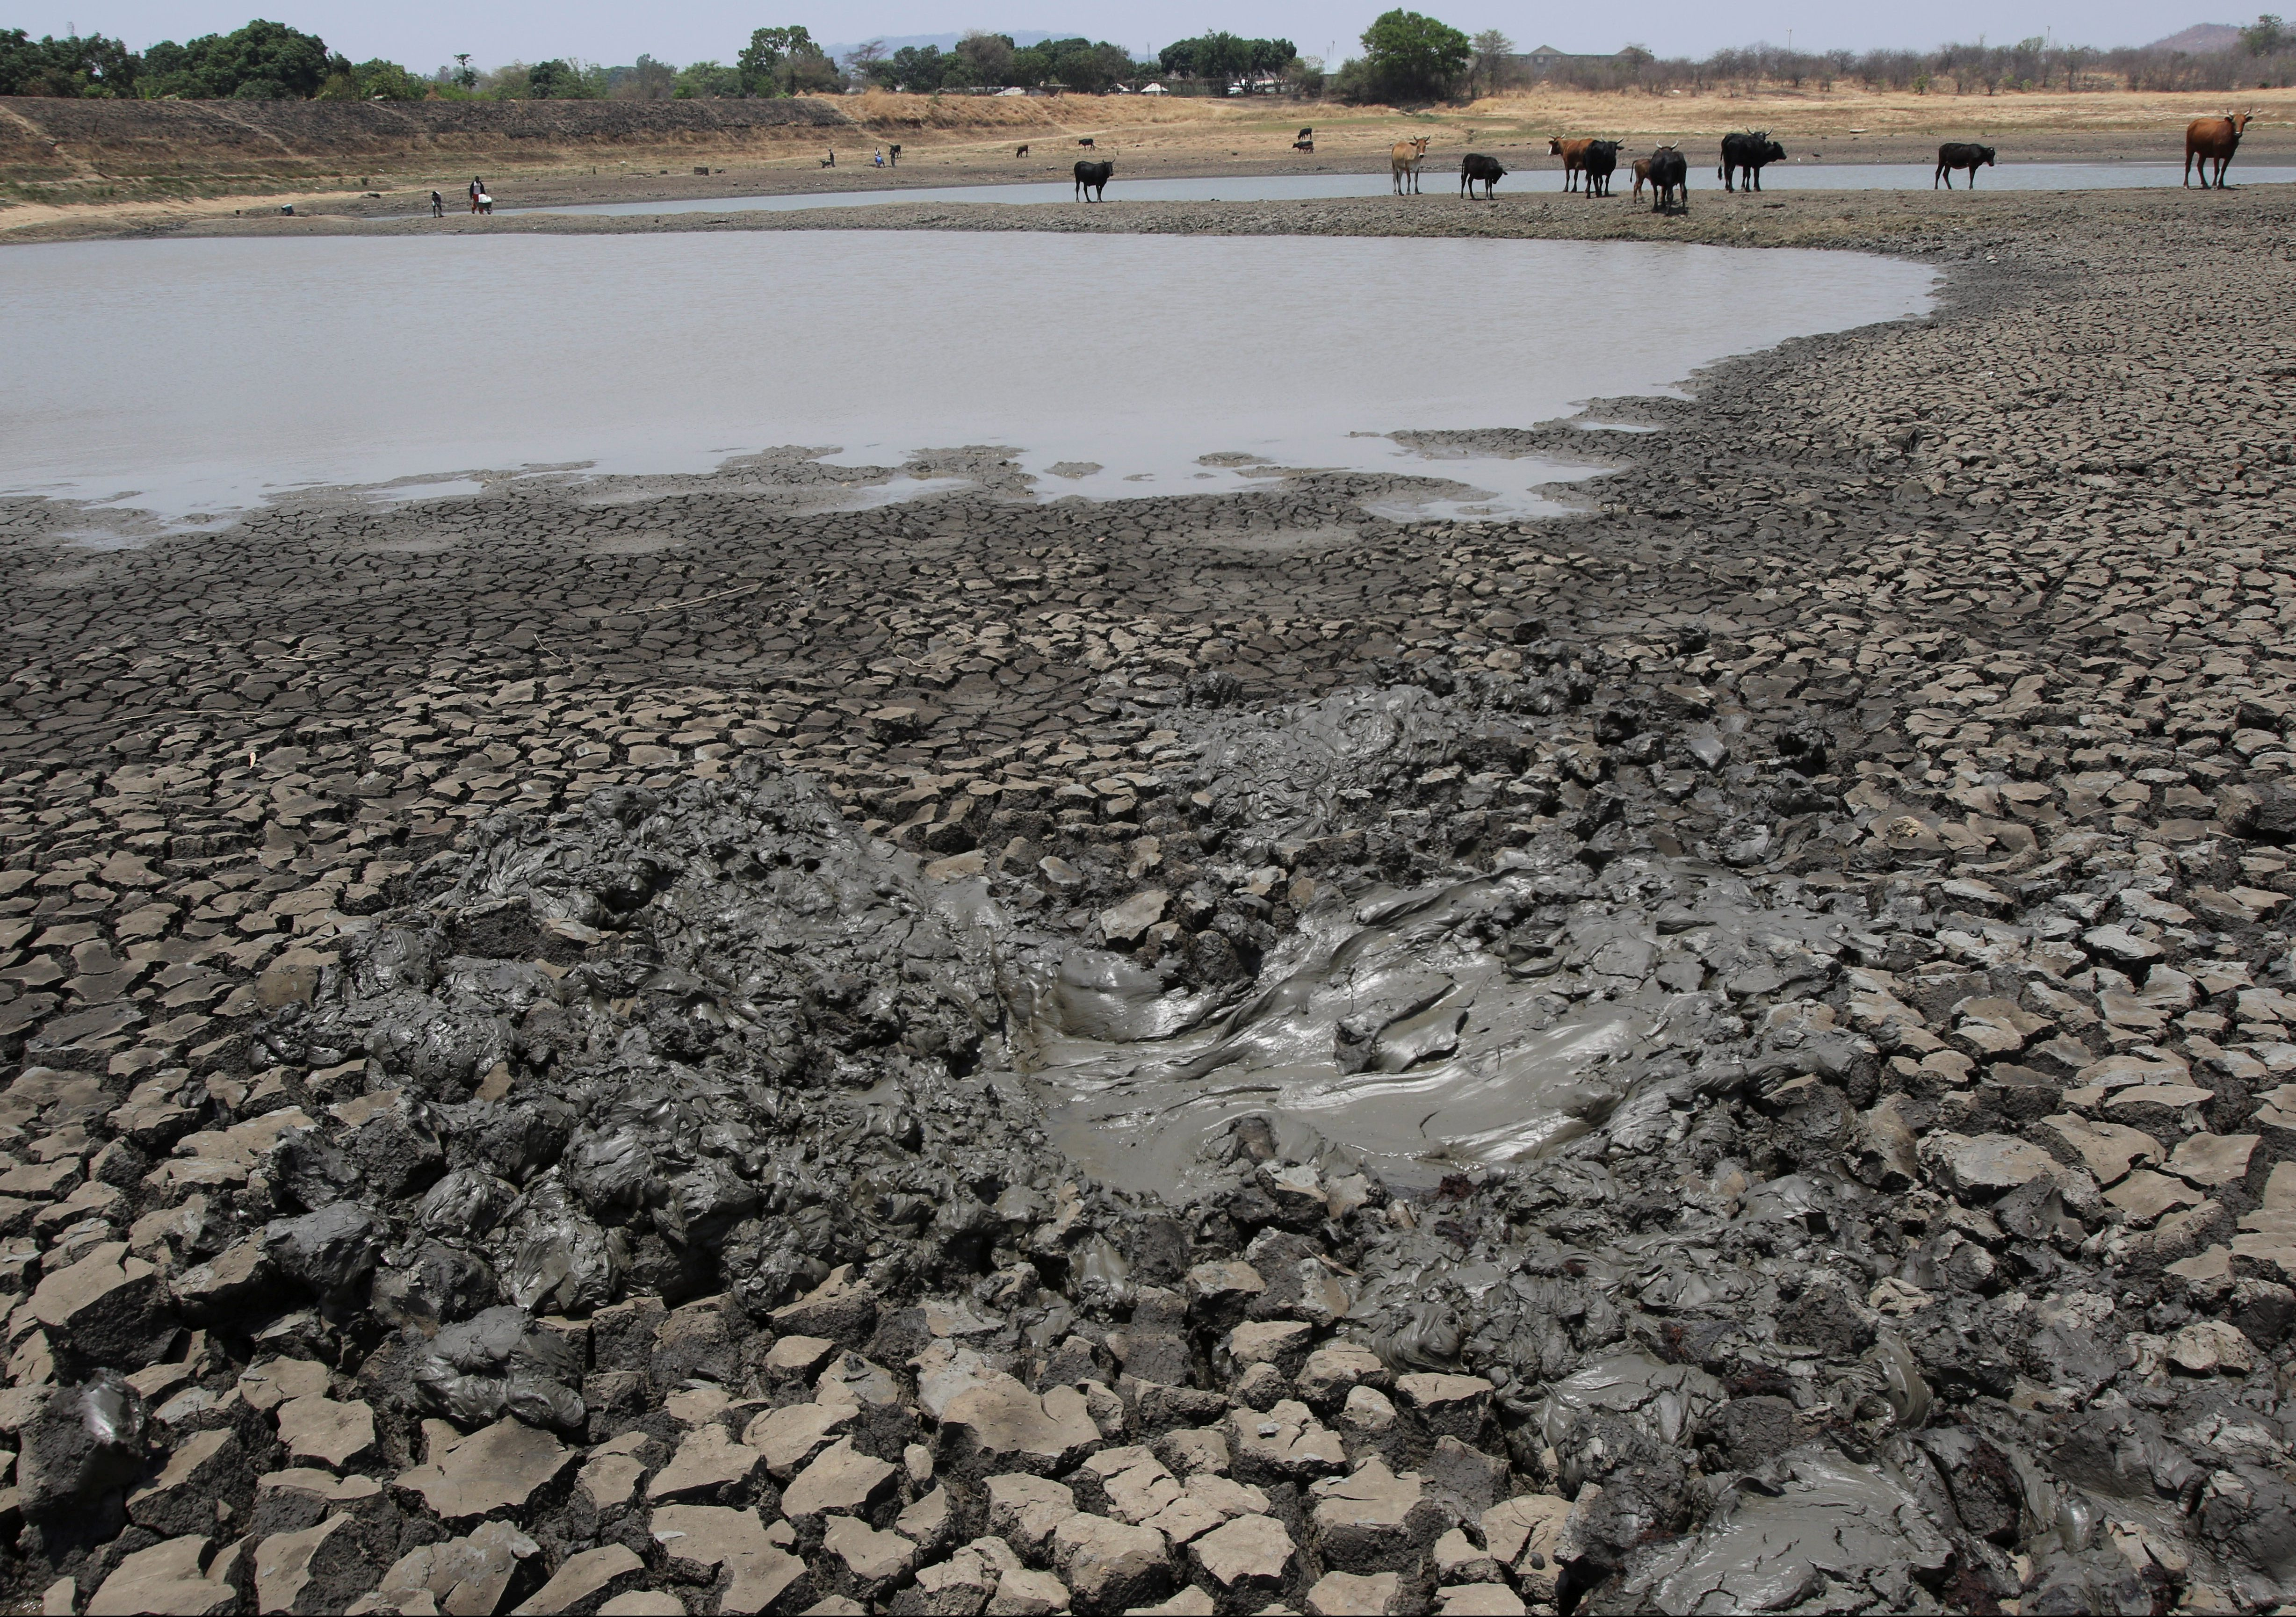 Cattle stand over cracked earth as water levels drop in a dam near Mount Darwin, Zimbabwe, October 26, 2016. Picture taken October 26, 2016. REUTERS/Philimon Bulawayo - RTX2QUTK